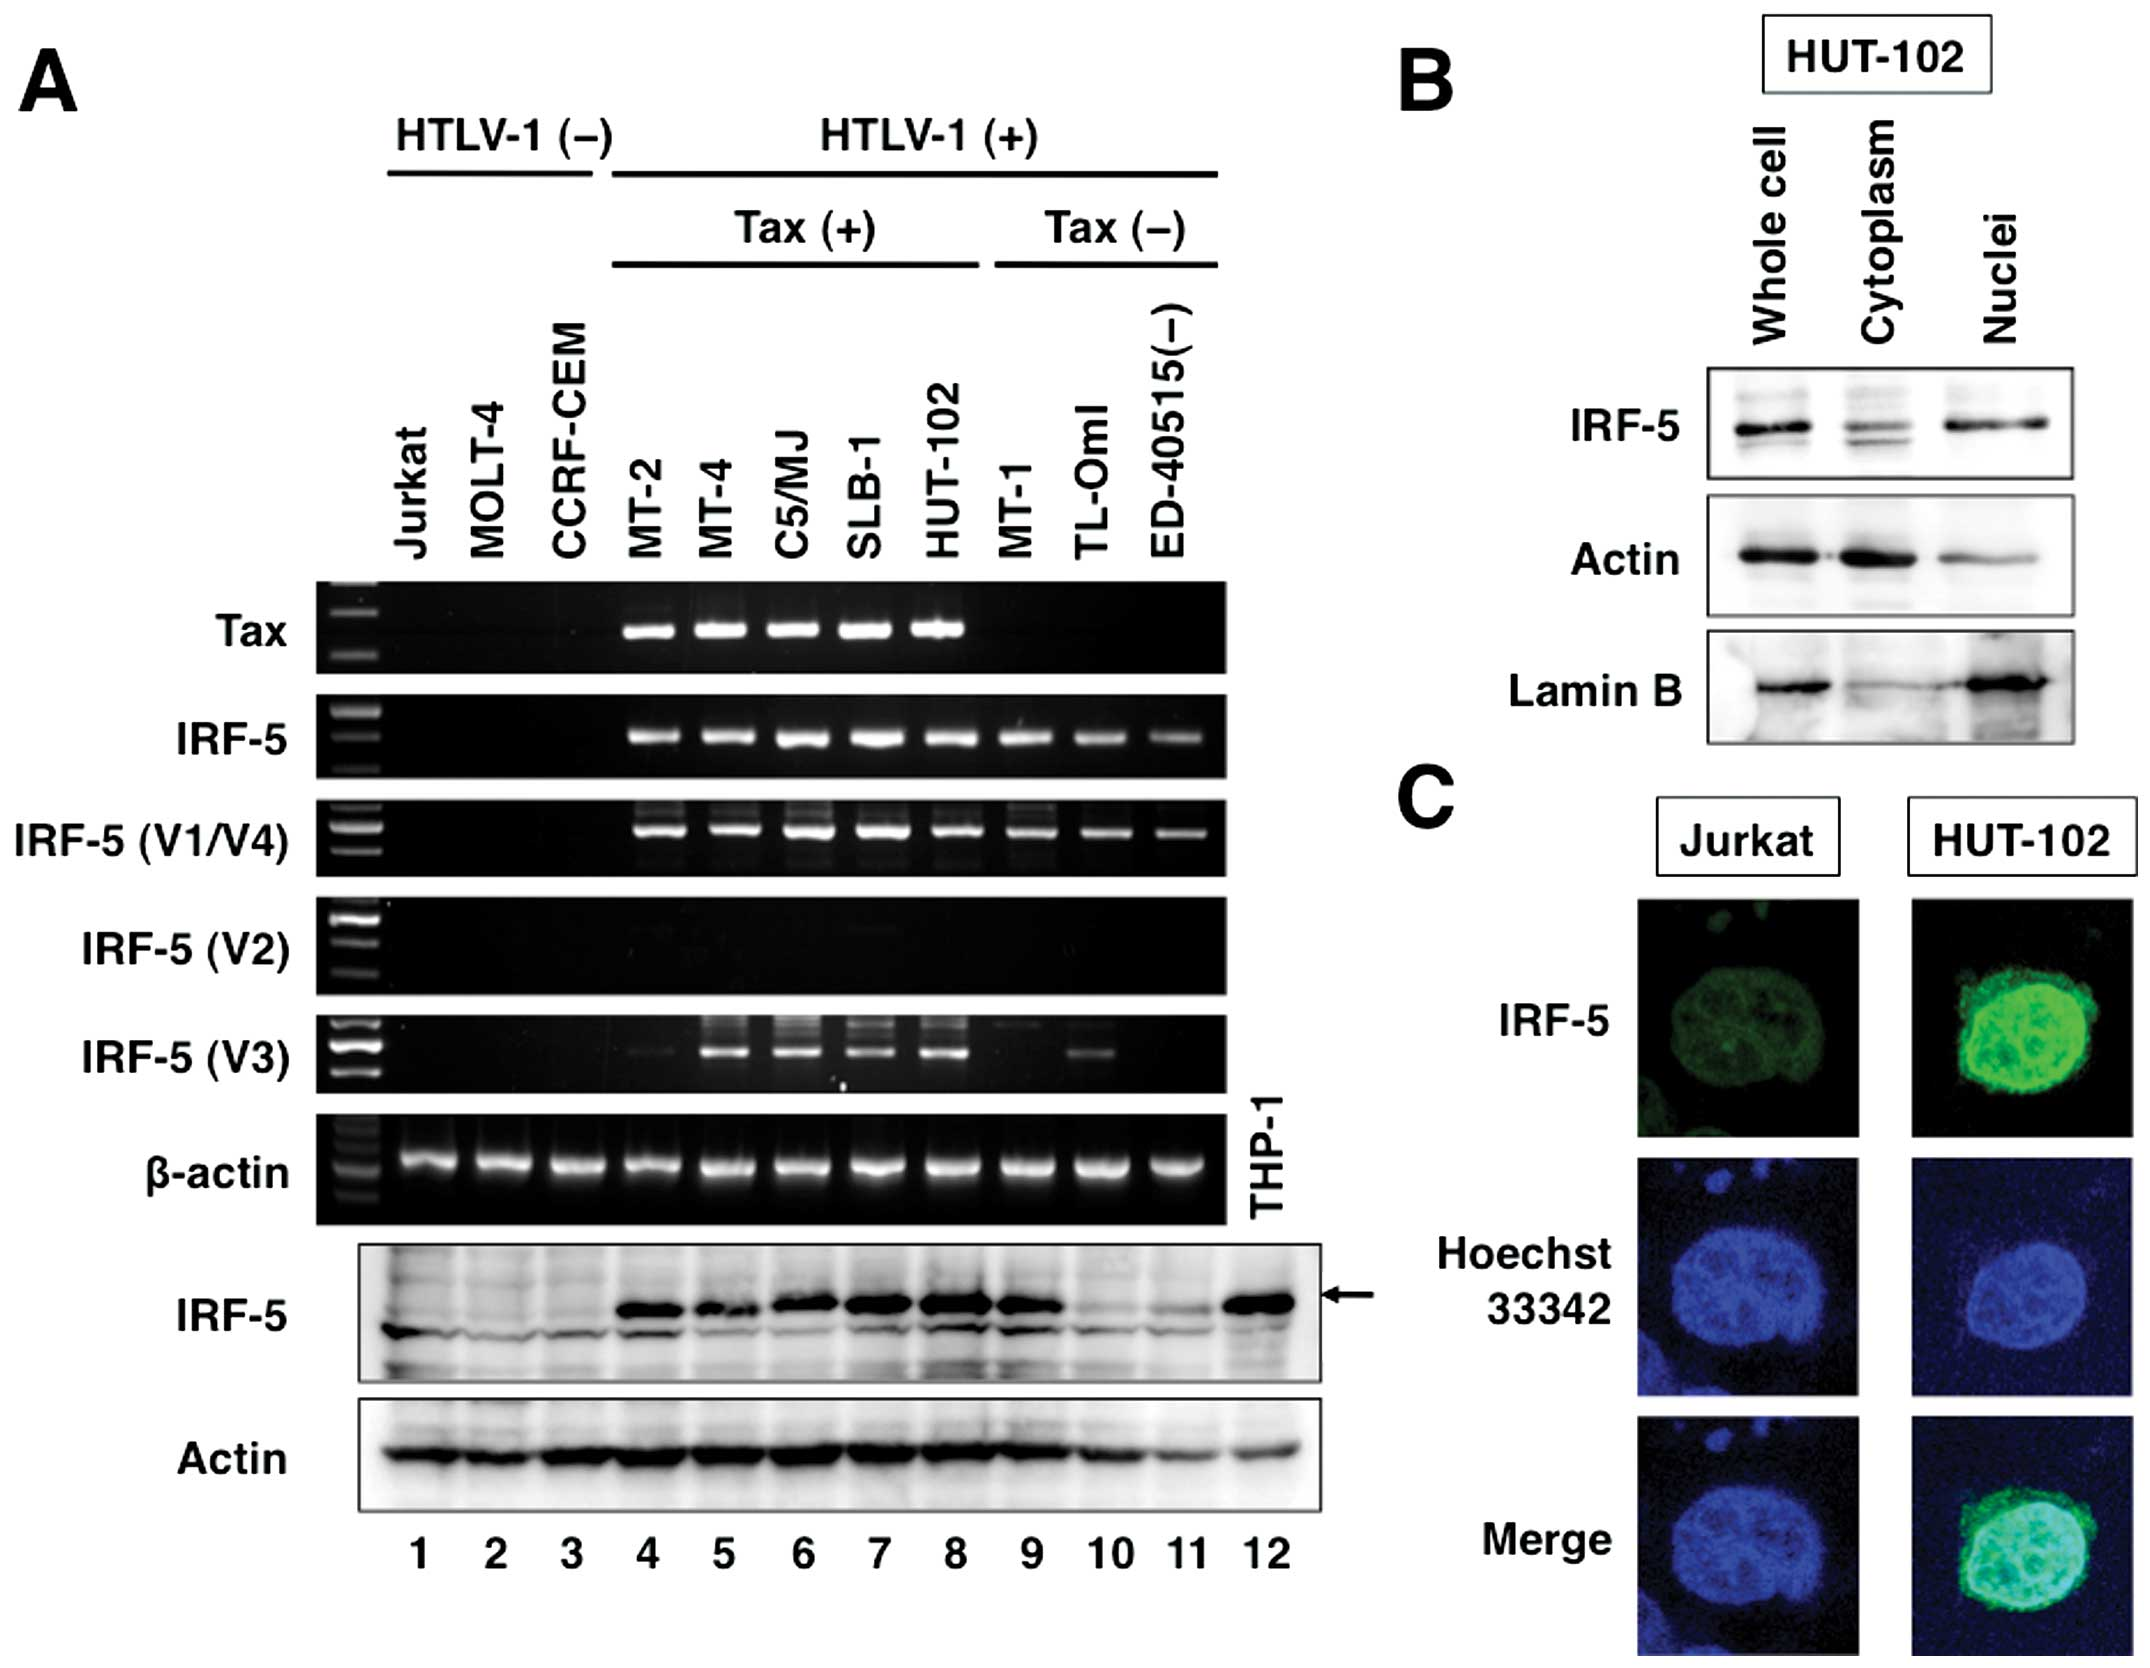 Constitutive expression of IRF-5 in HTLV-1-infected T cells